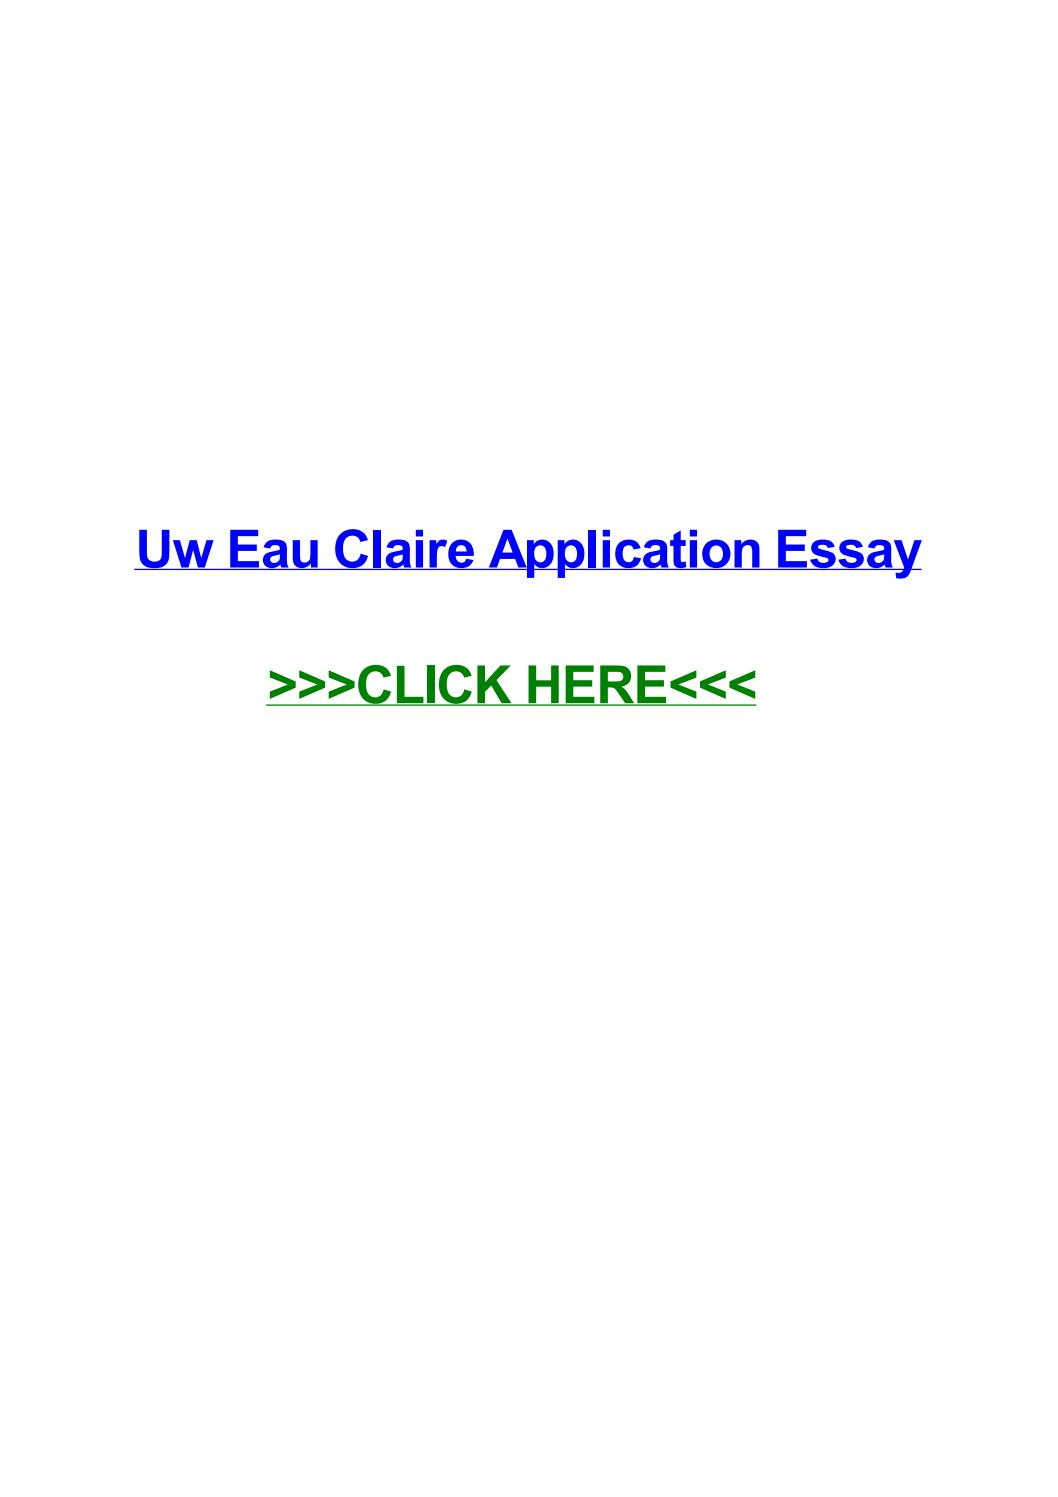 023 Page 1 Uw Application Essay Incredible Madison Examples Transfer Full